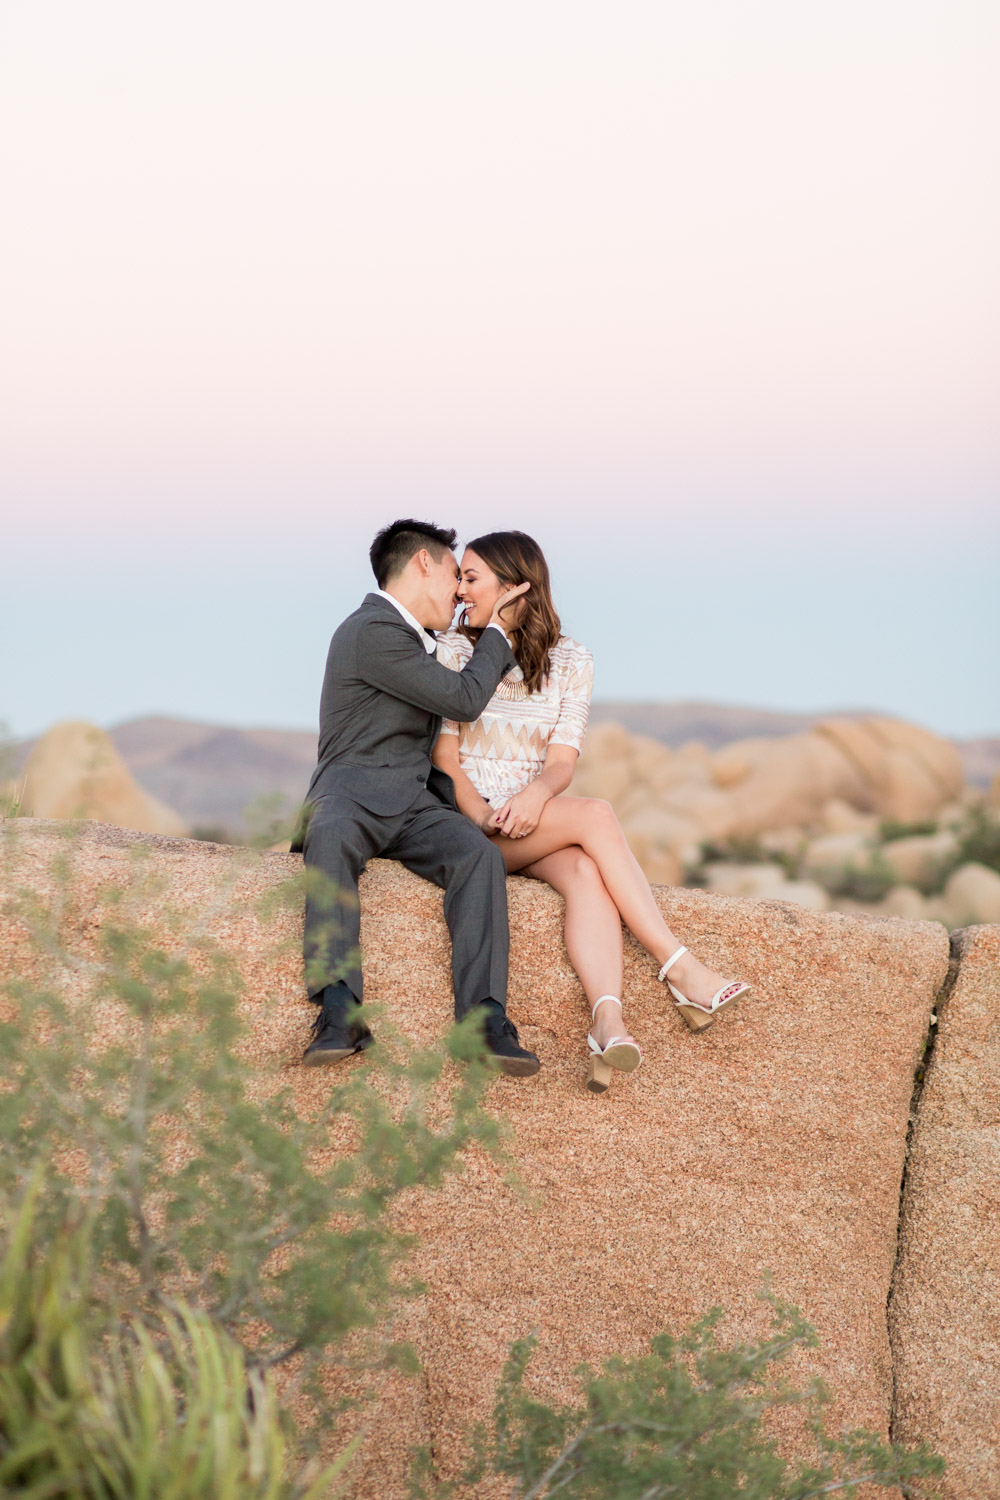 Intimate engagement photo of a couple with Sunset at Joshua Tree surrounded by rocks, Cavin Elizabeth Photography